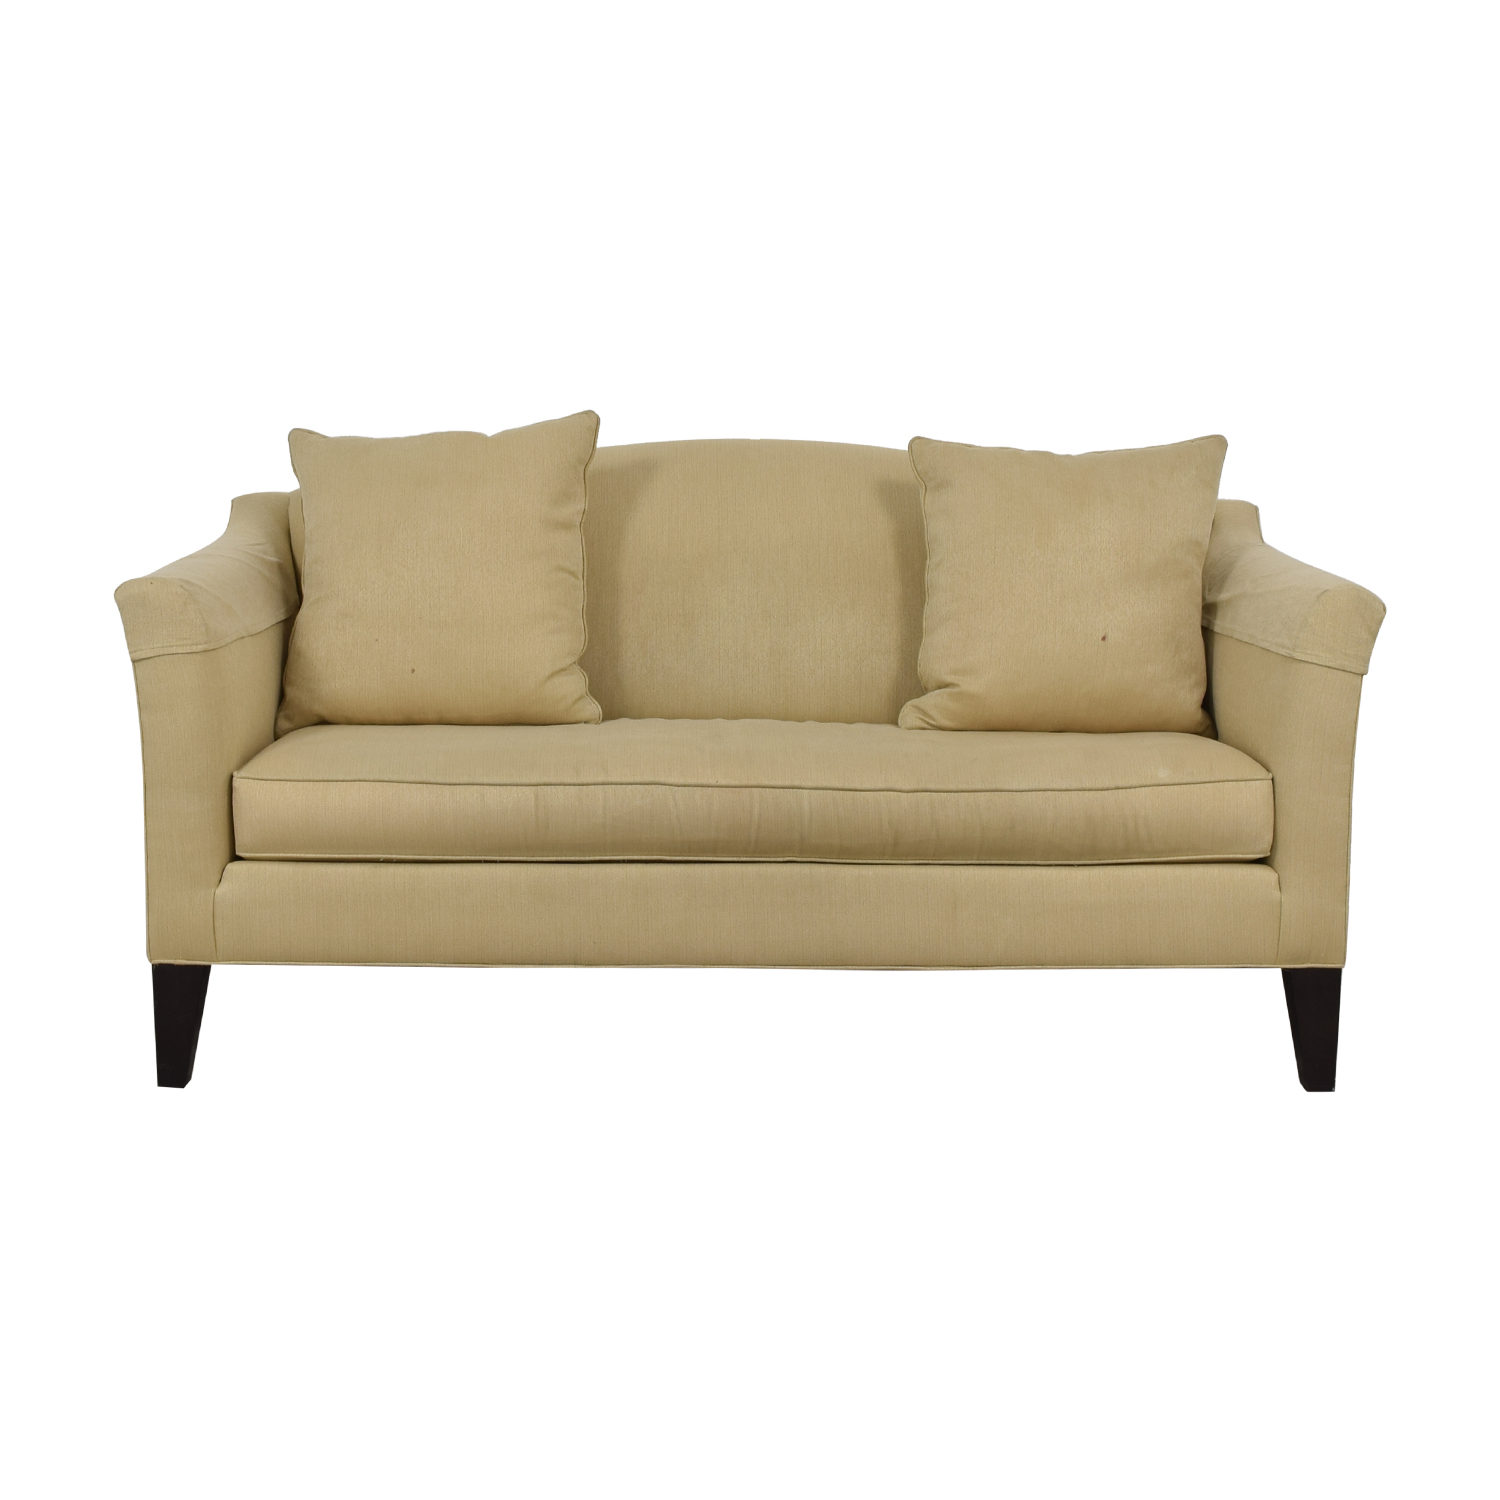 buy Ethan Allen Hartwell Camel Single Cushion Sofa Ethan Allen